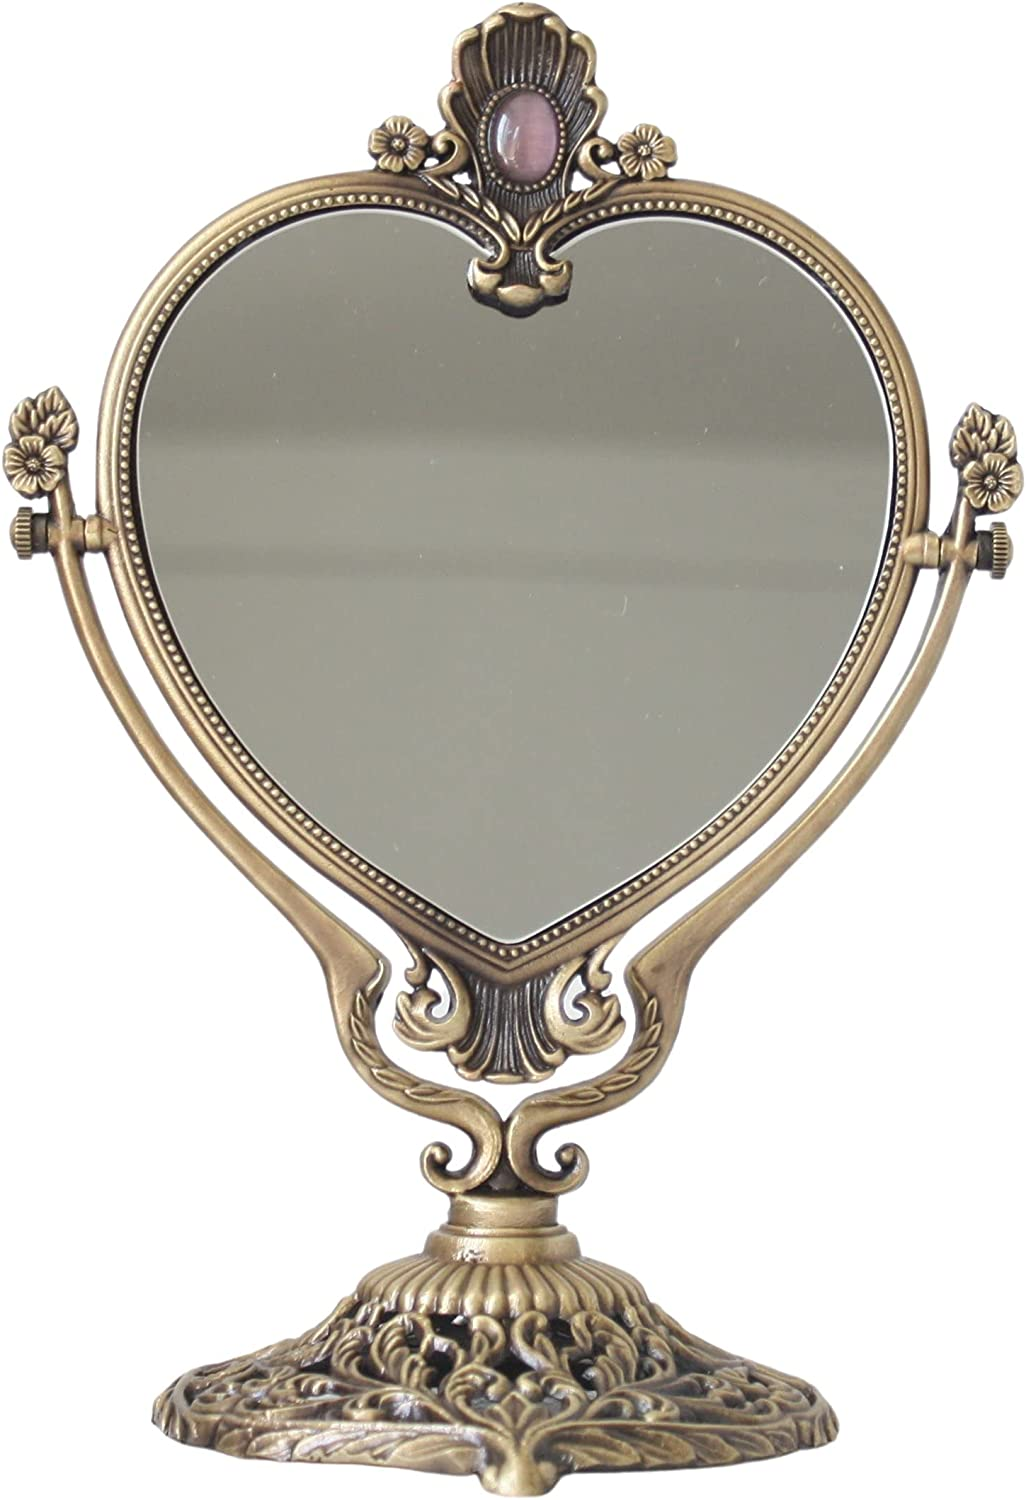 SEHAMANO Vintage Heart Shaped Vanity Mirror Feathe Sales of SALE items from new Max 59% OFF works with Embossed